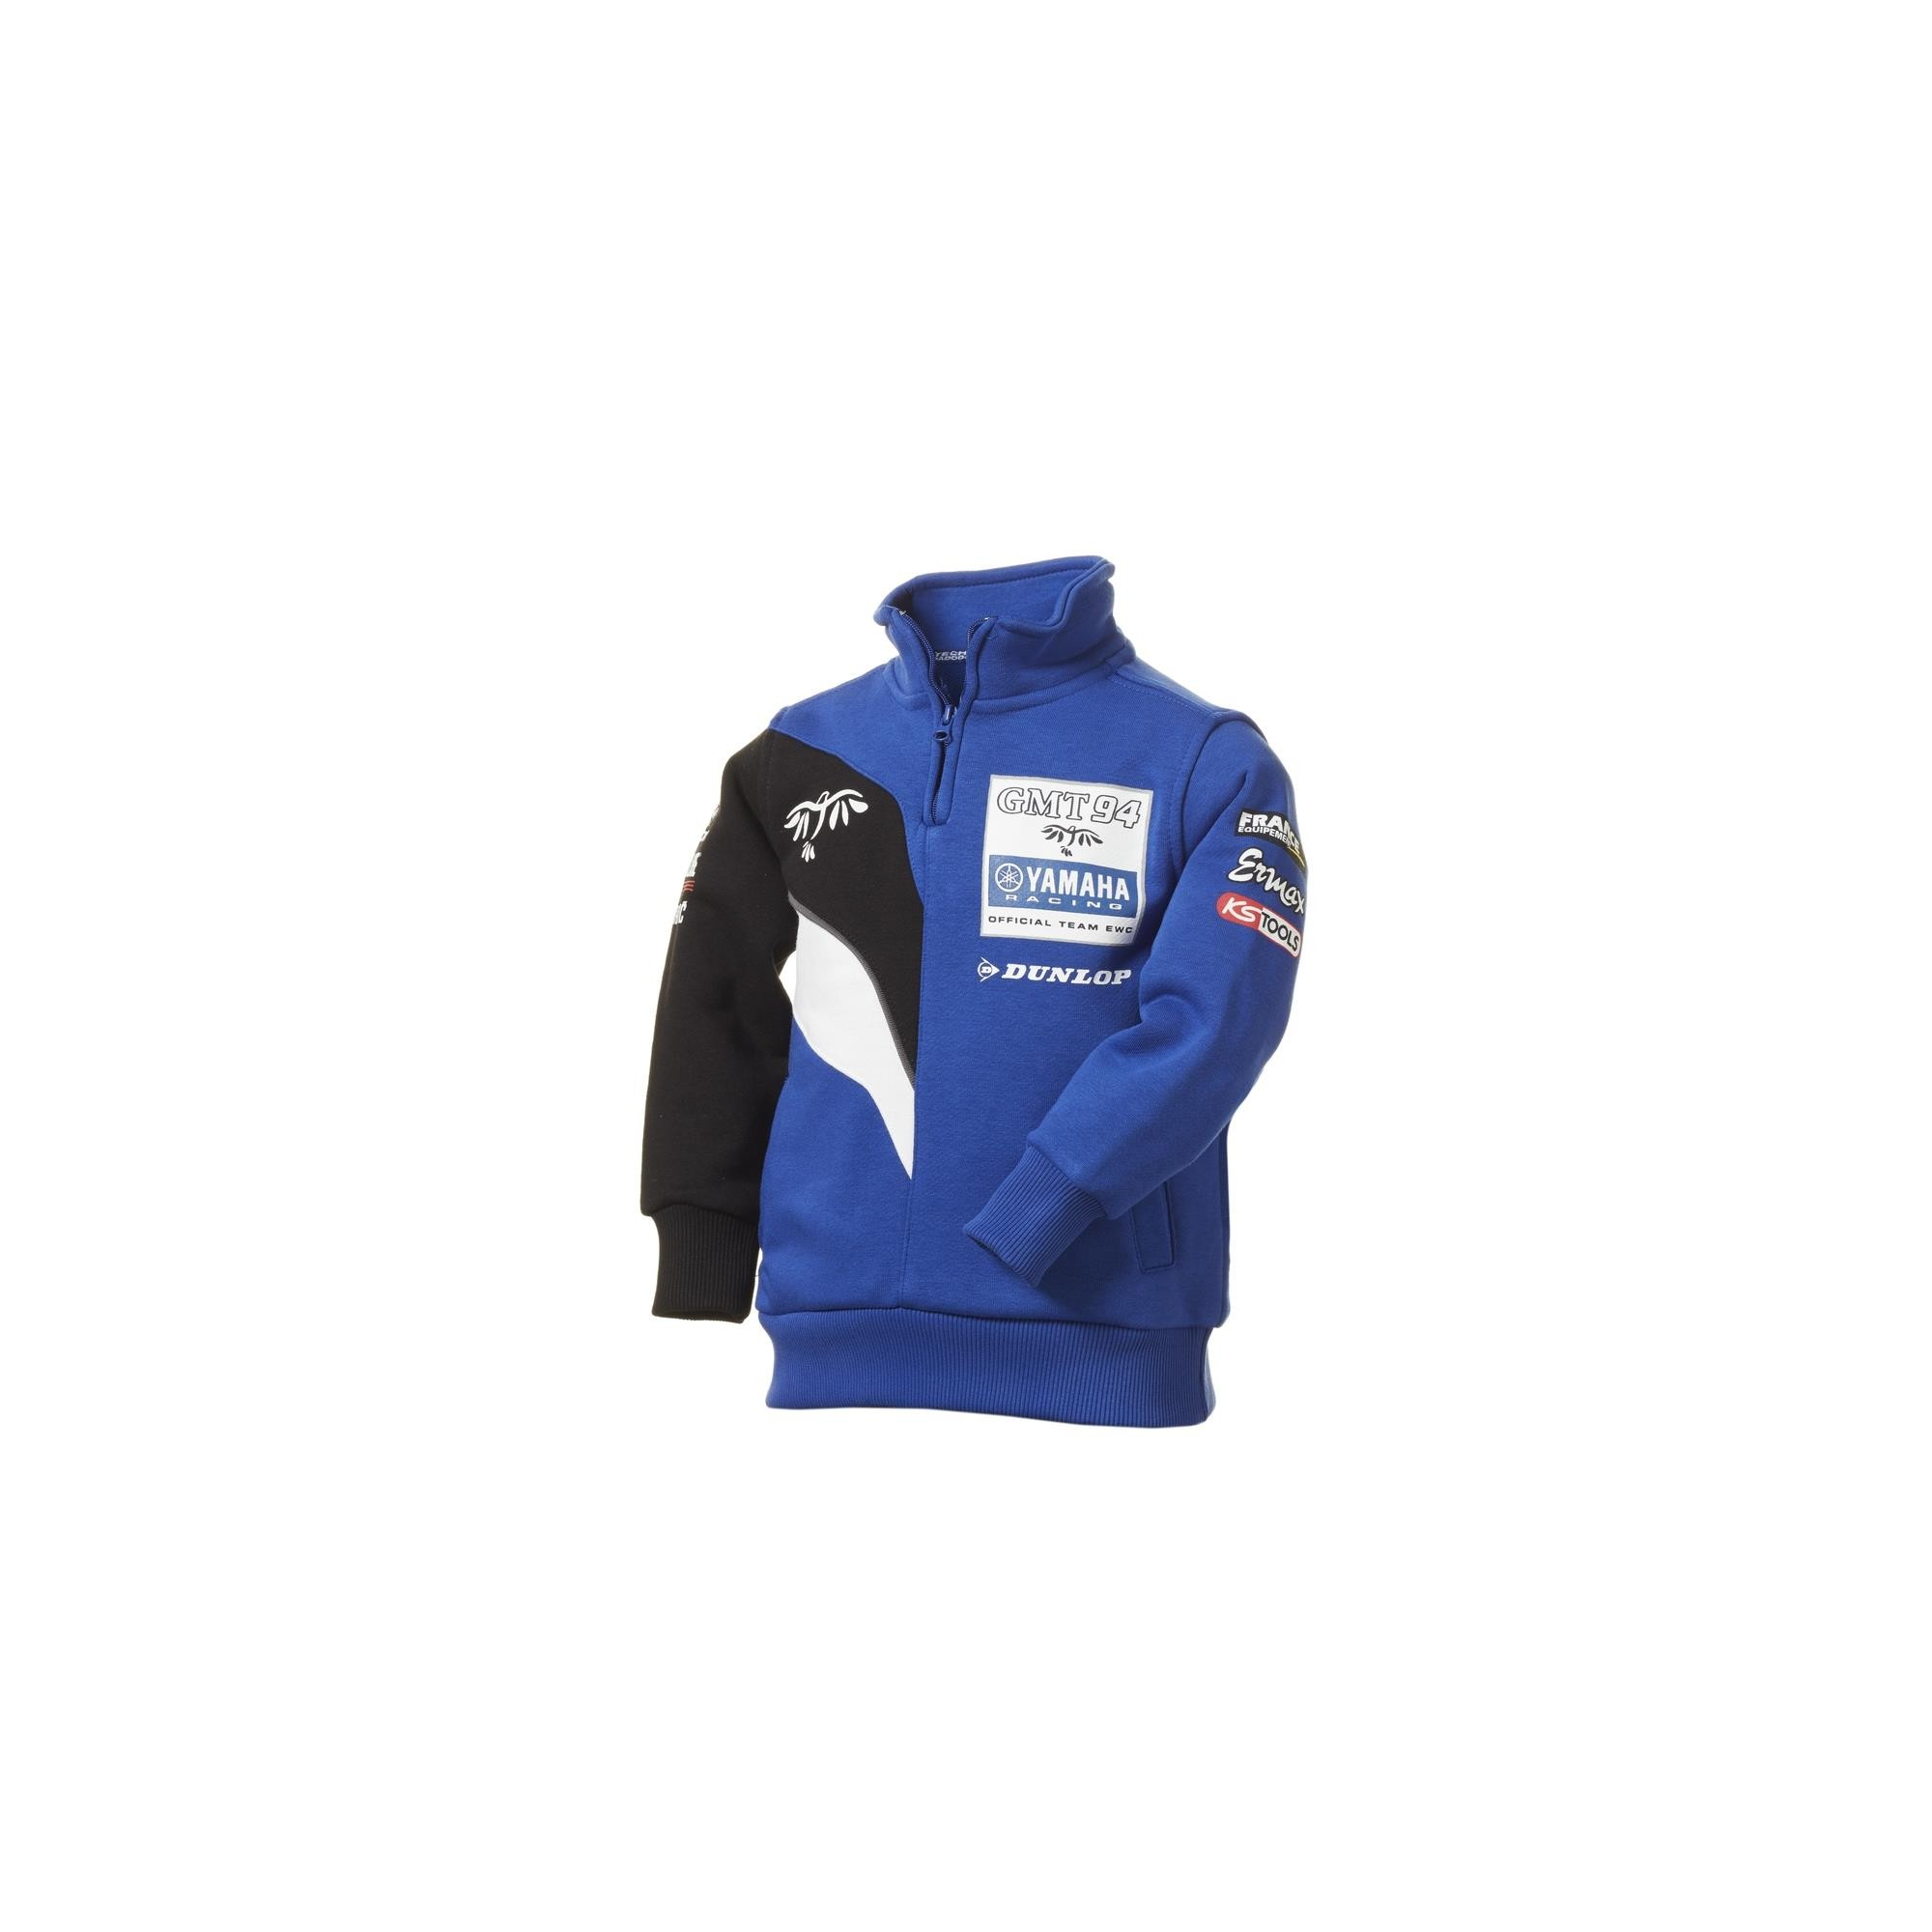 Sudadera réplica GMT94 Yamaha EWC Racing Team